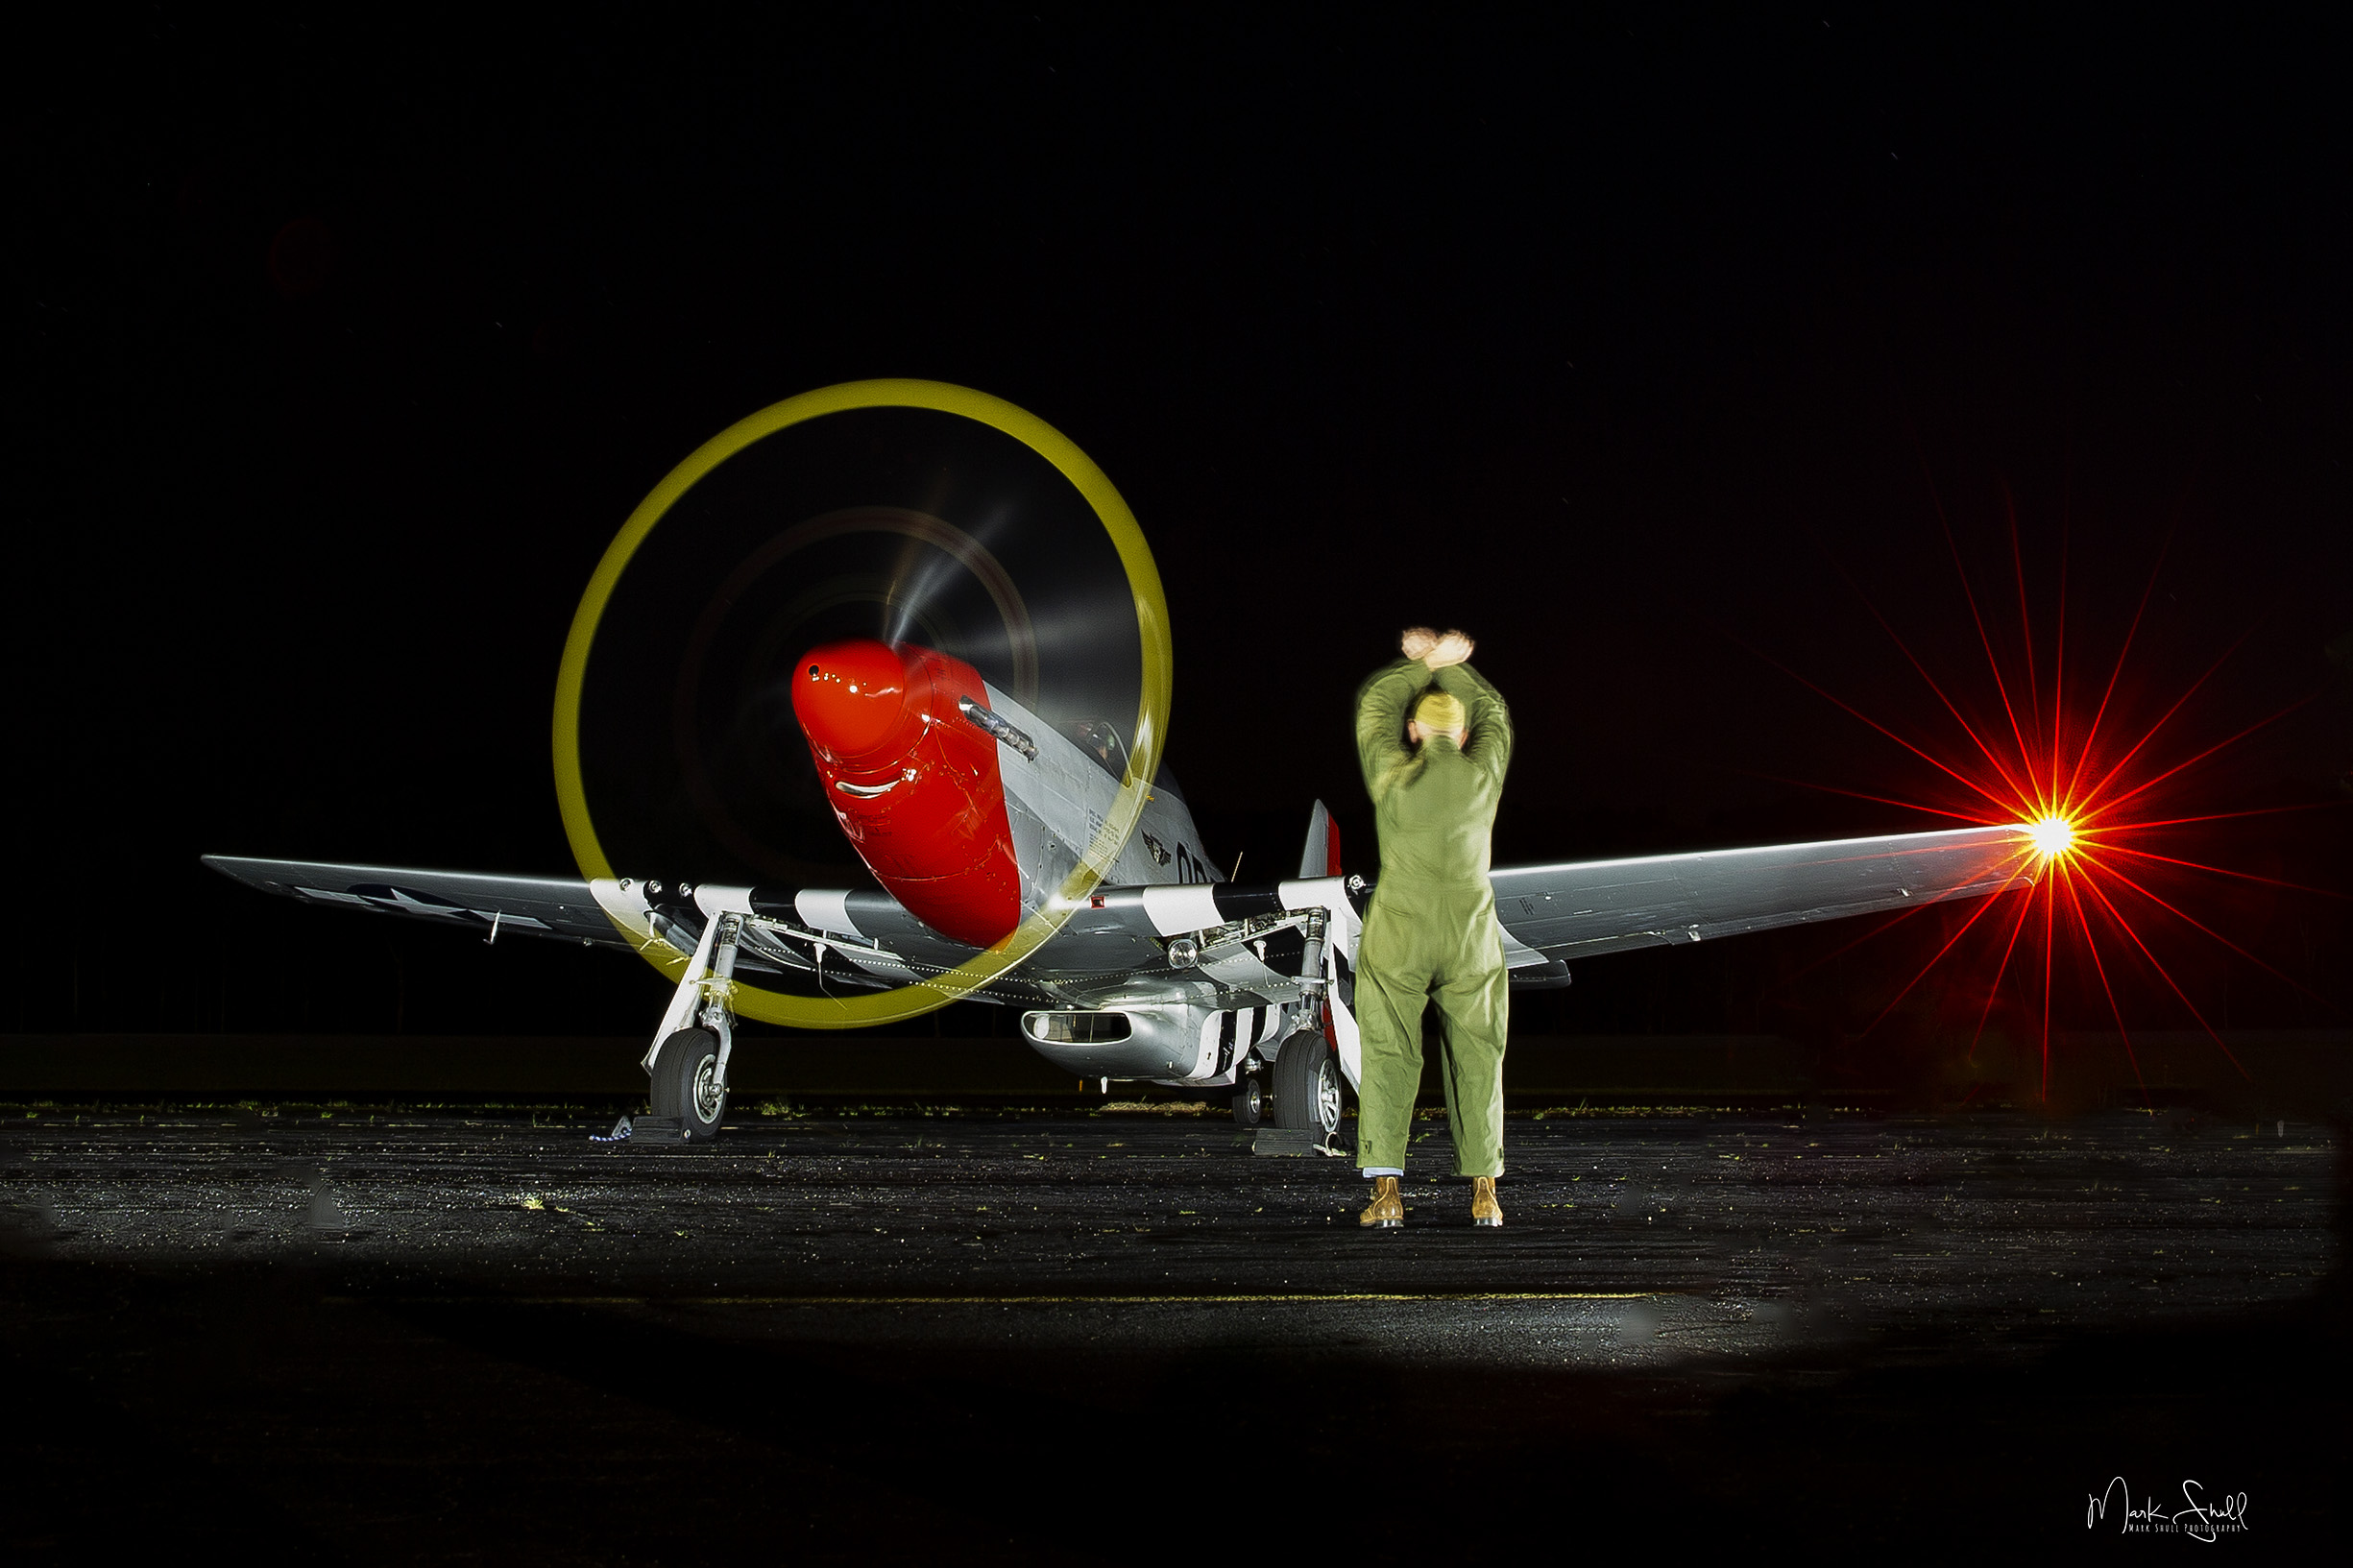 P-51 Mustang night signal man